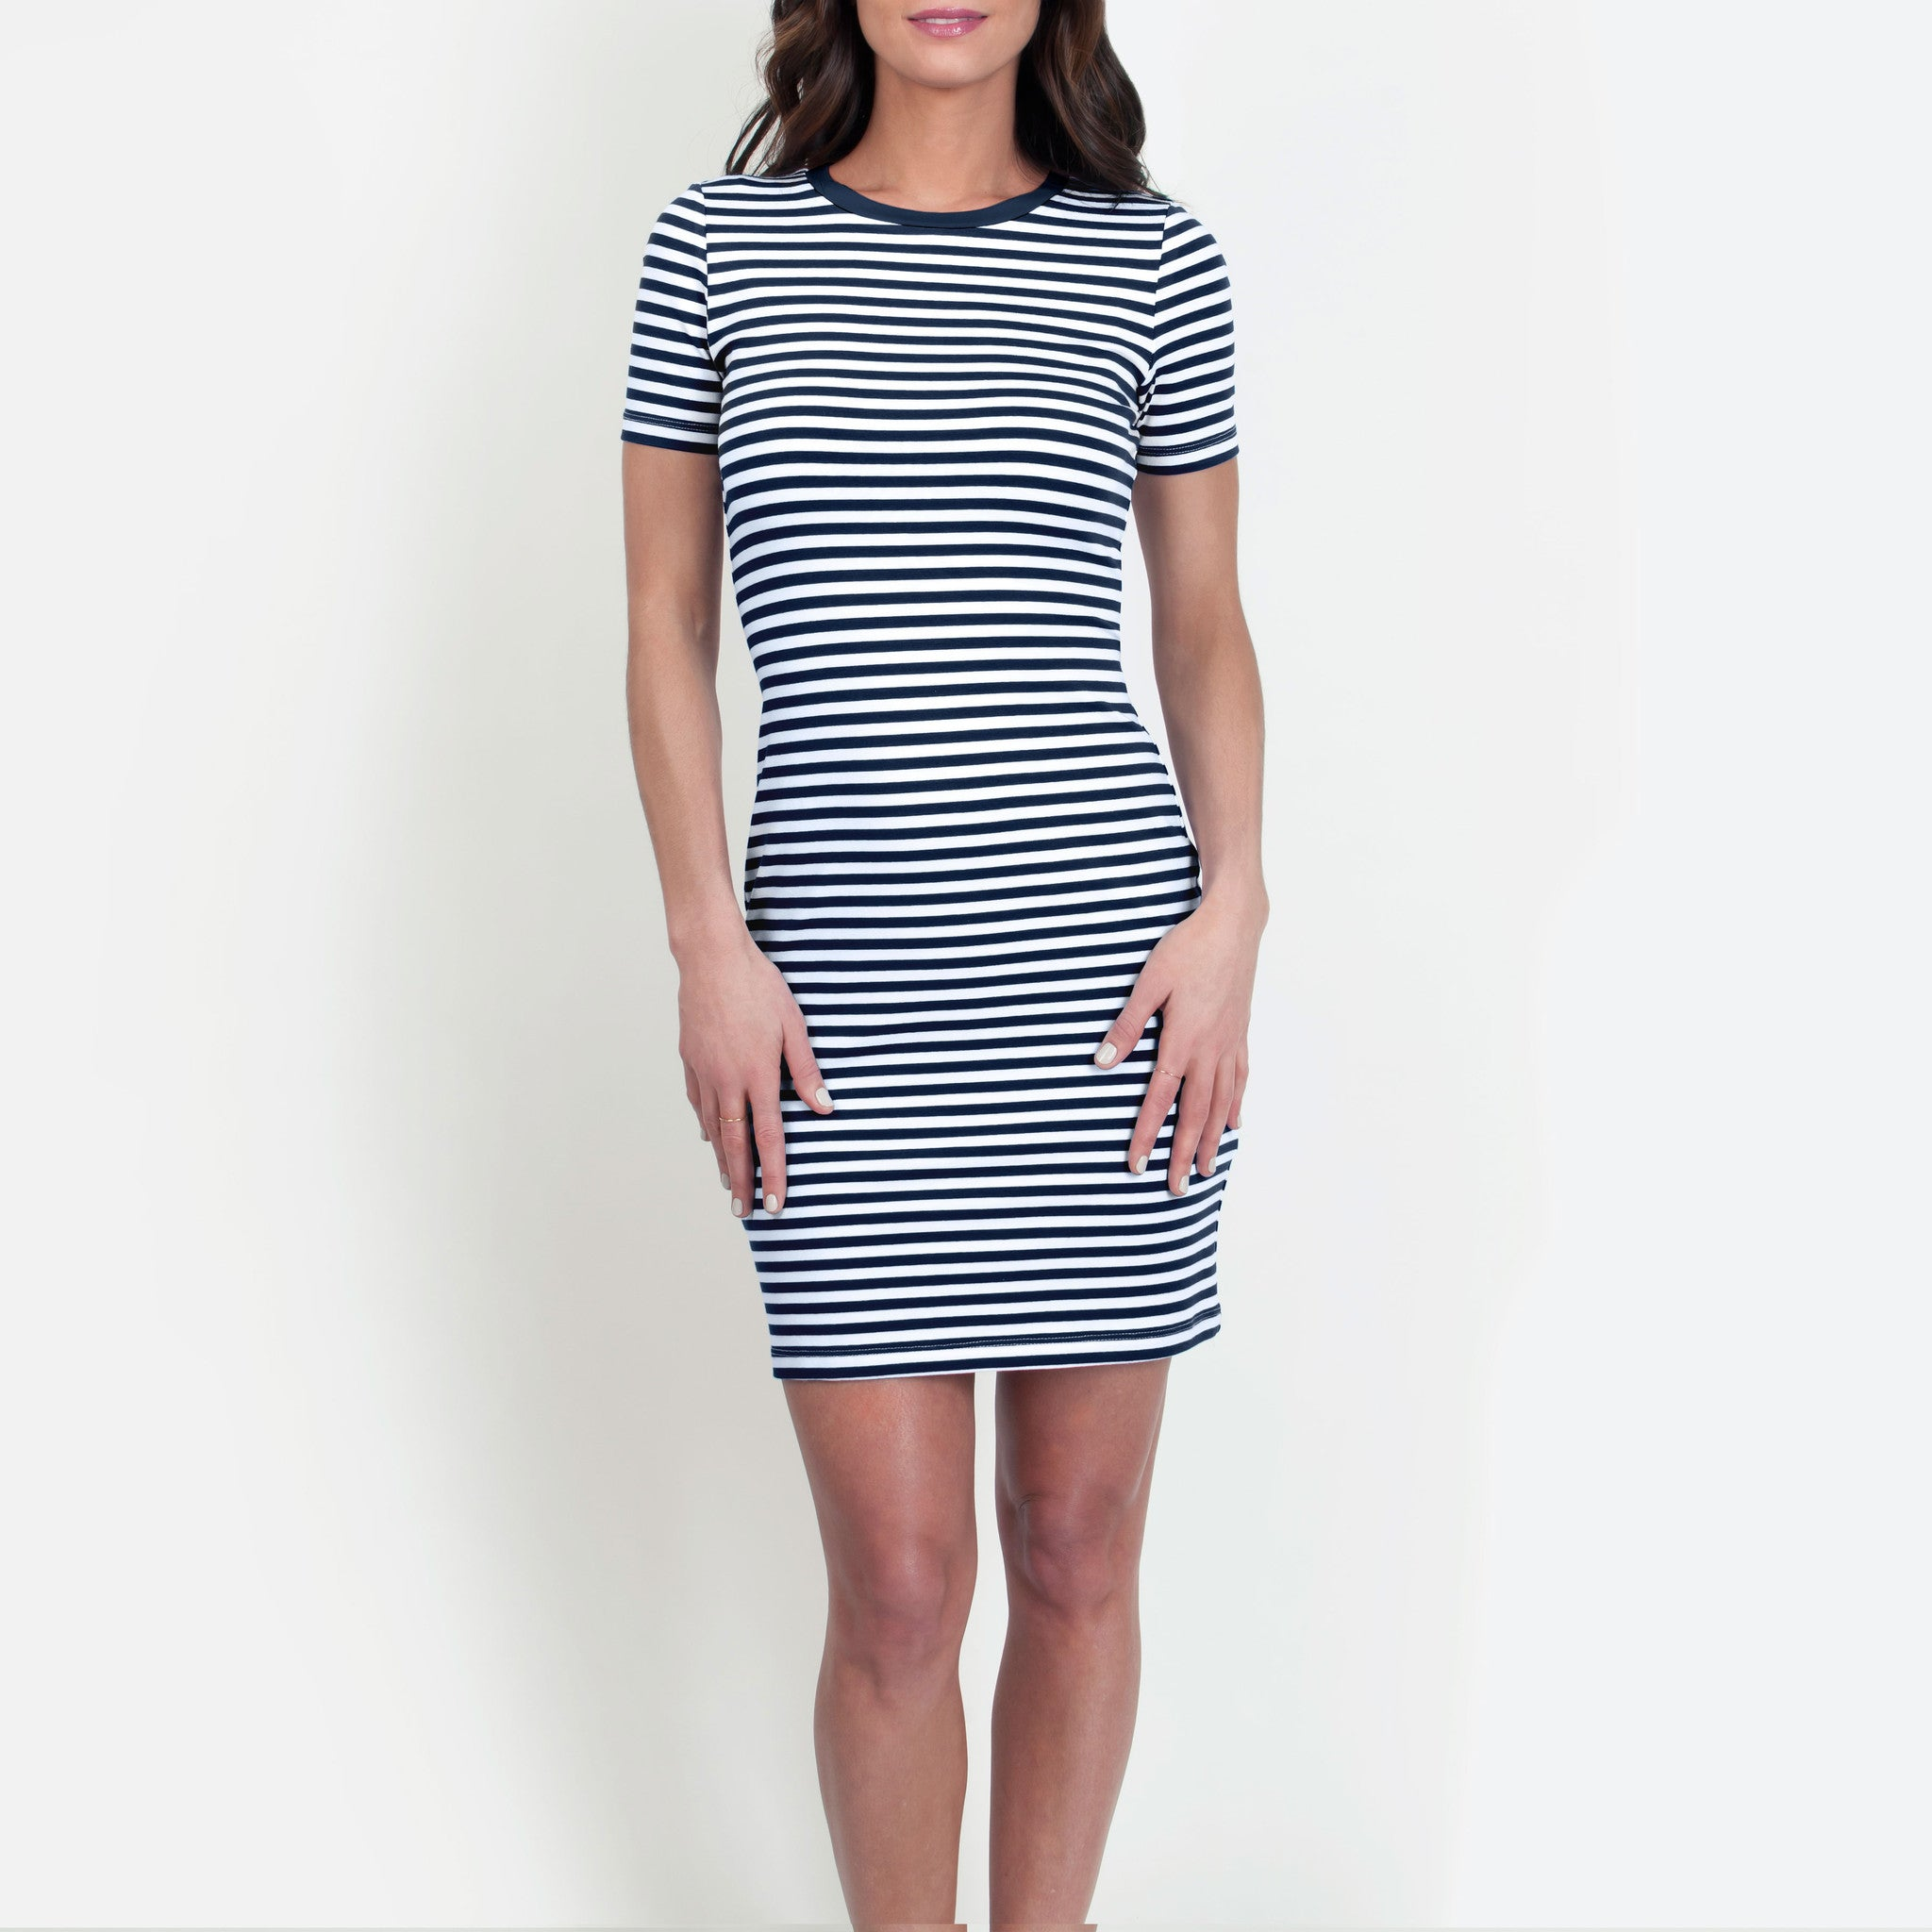 c8249817e2 JaneHudson Betty Navy and White Dress - Ship Chic